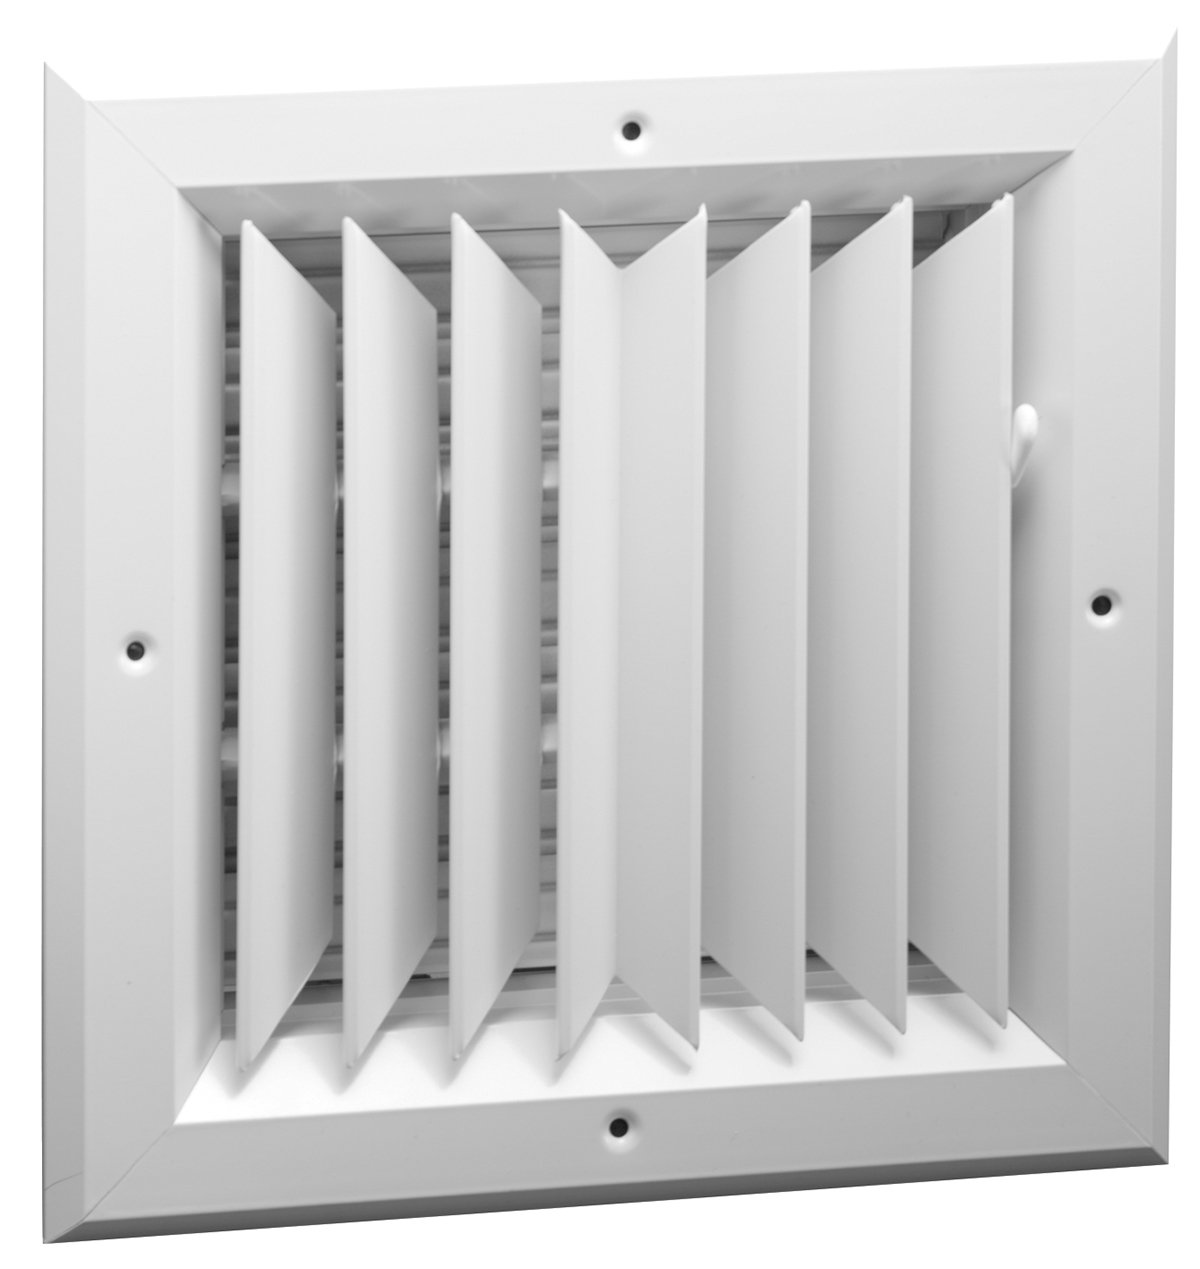 10'' x 10'' 2-WAY ALUMINUM BAR CEILING DIFFUSER - Vent Duct Cover - With Oposing Dampers via Lever Control